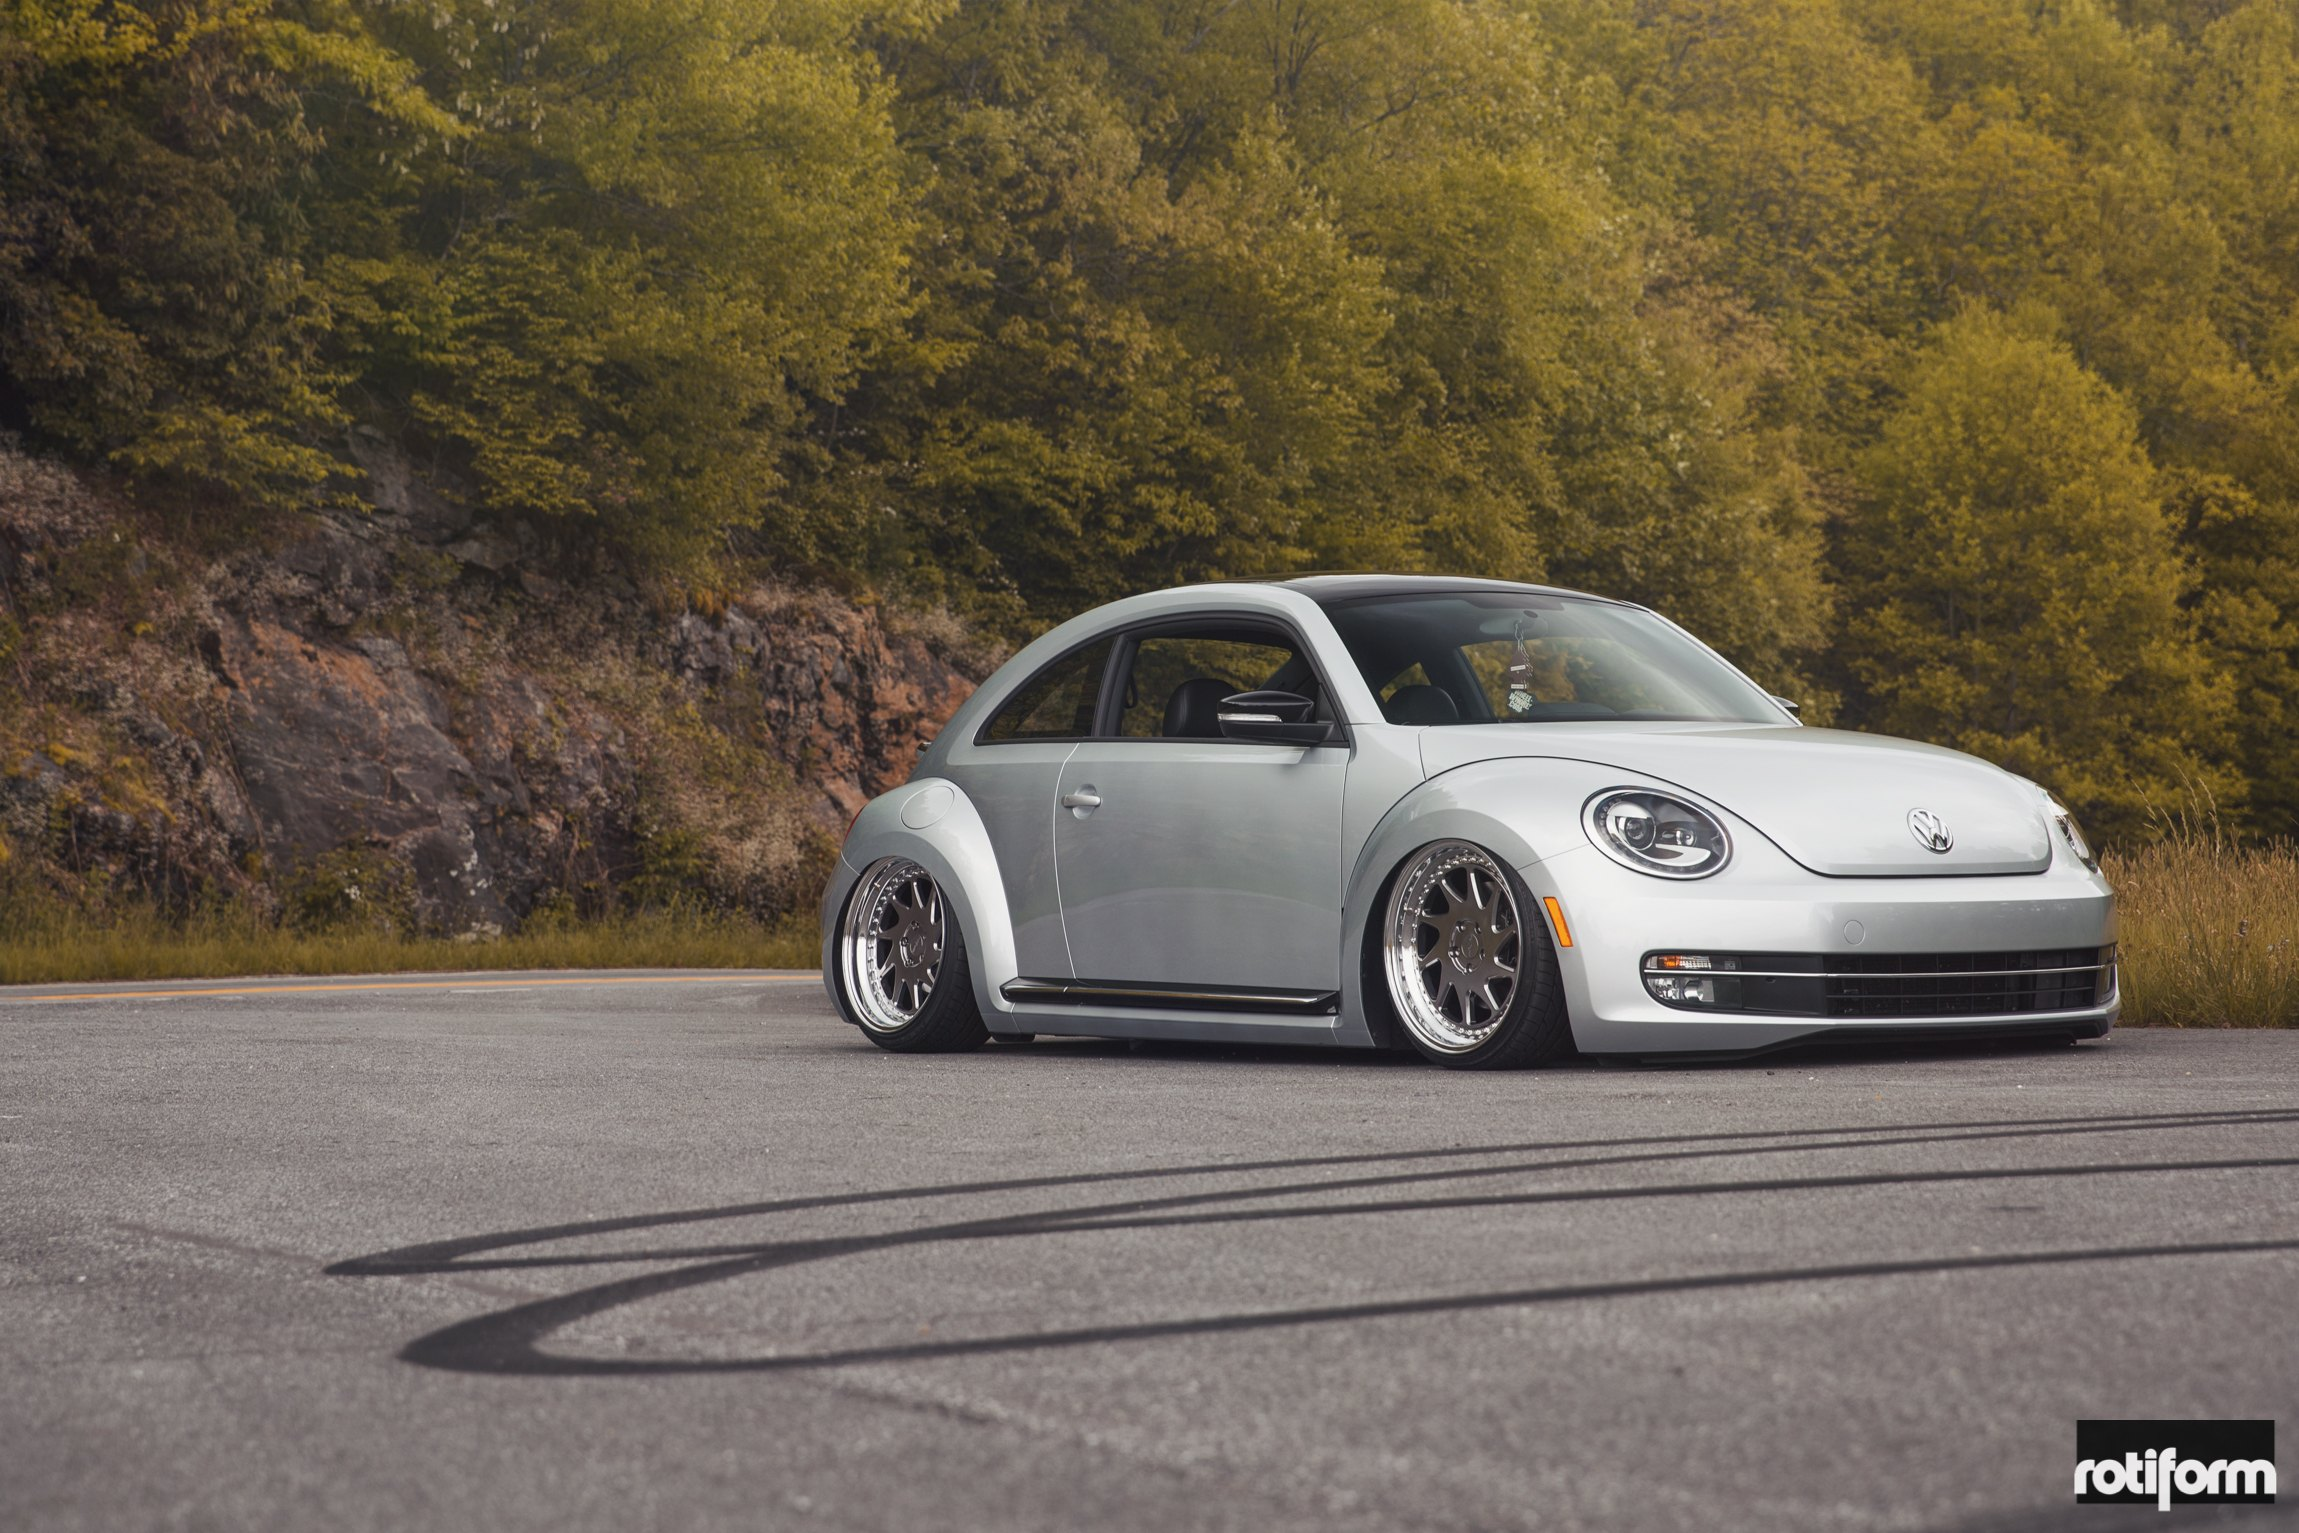 Silver Stanced VW Beetle with Aftermarket Front Bumper - Photo by Rotiform